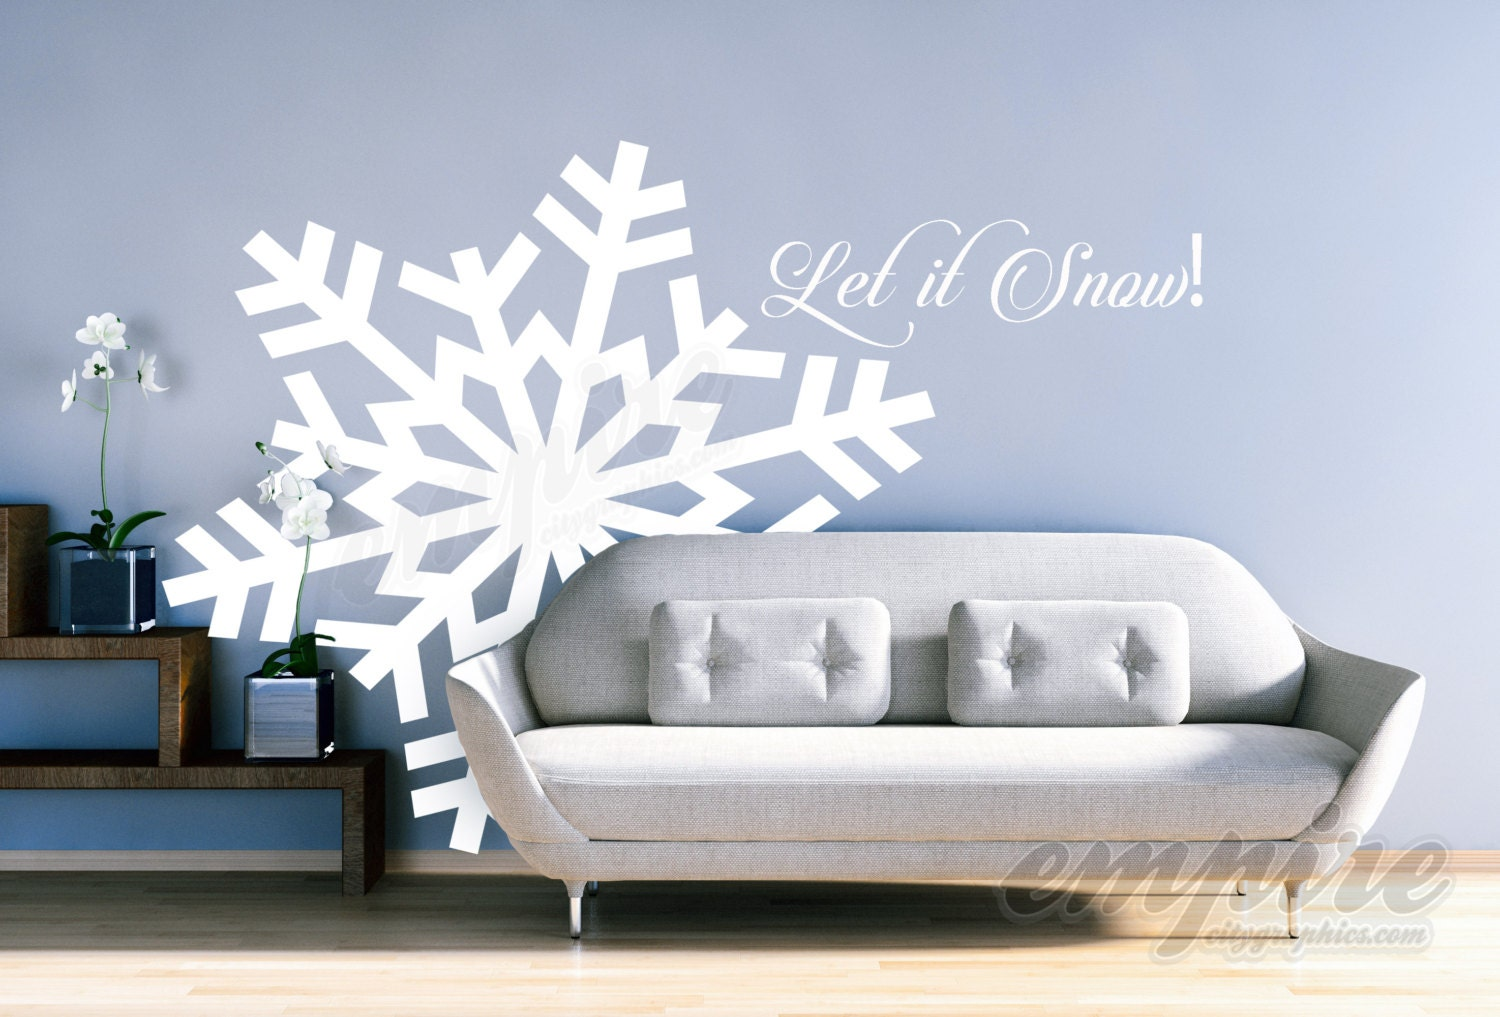 Large snowflake decals giant snowflakes holiday decals let it large snowflake decals giant snowflakes holiday decals let it snow decal frozen decals snow wall decals let it go decals frozen decor amipublicfo Gallery